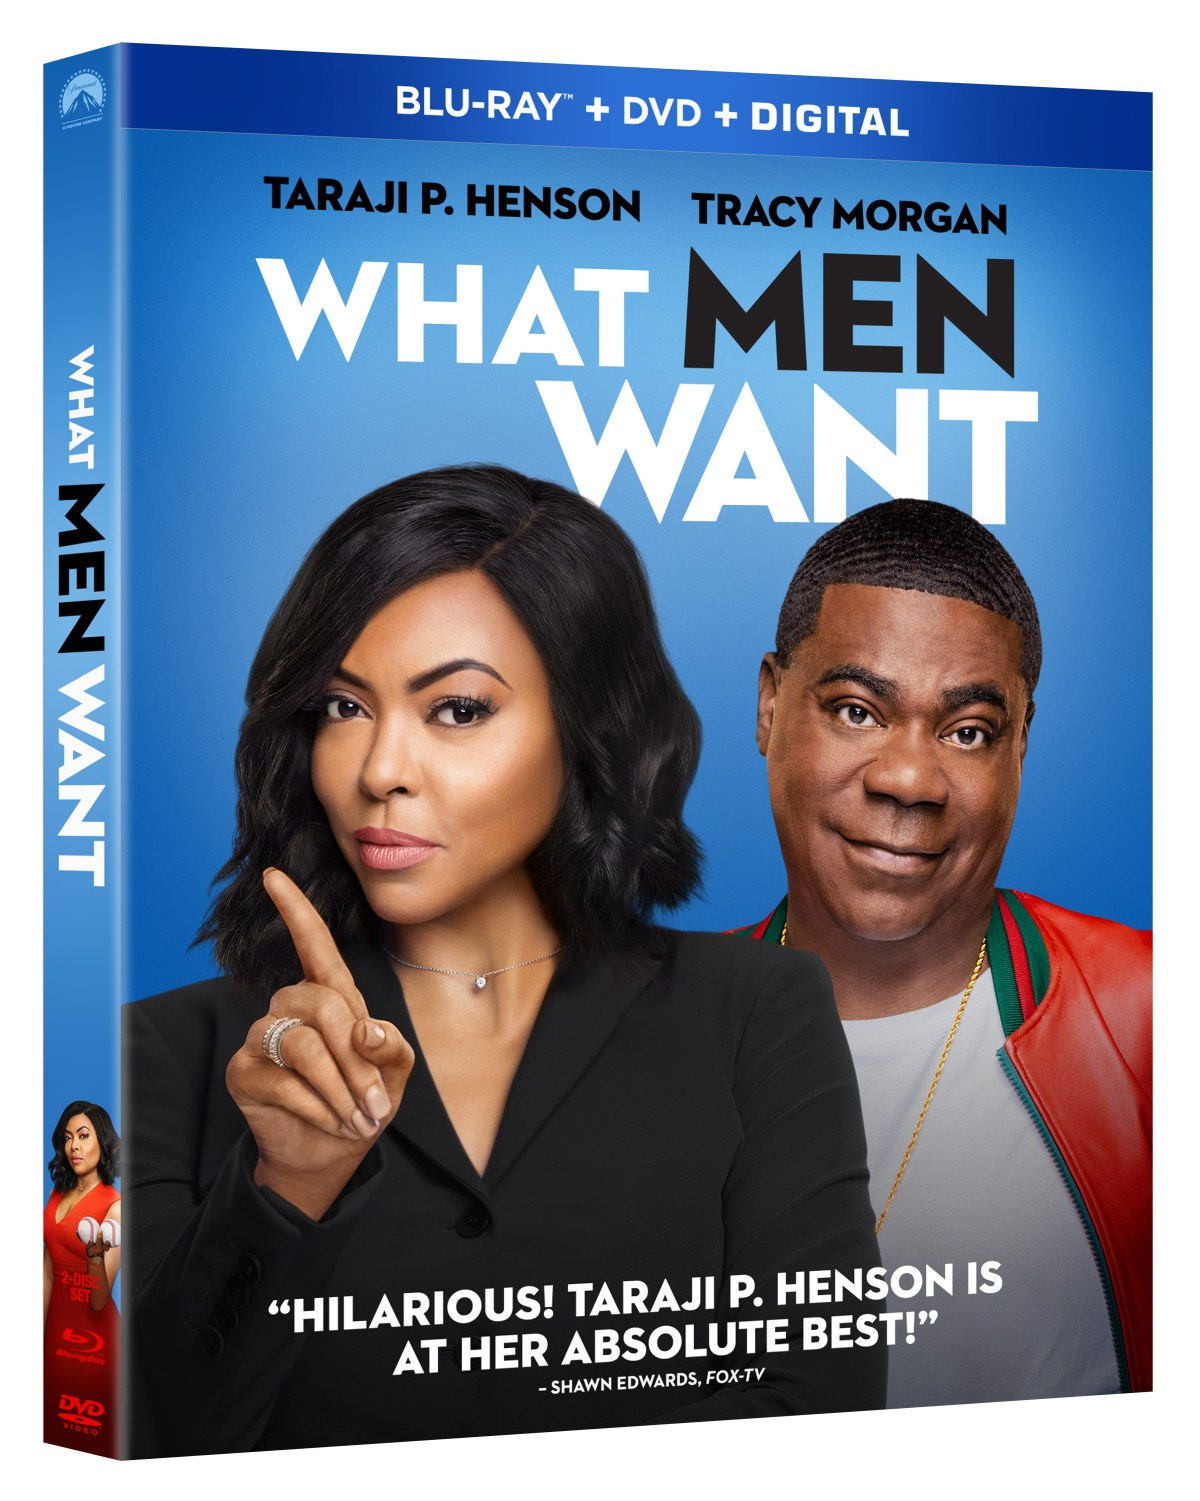 [GIVEAWAY] Win 'What Men Want' On Blu-ray Combo Pack: Available On Blu-ray & DVD May 7, 2019 From Paramount 6